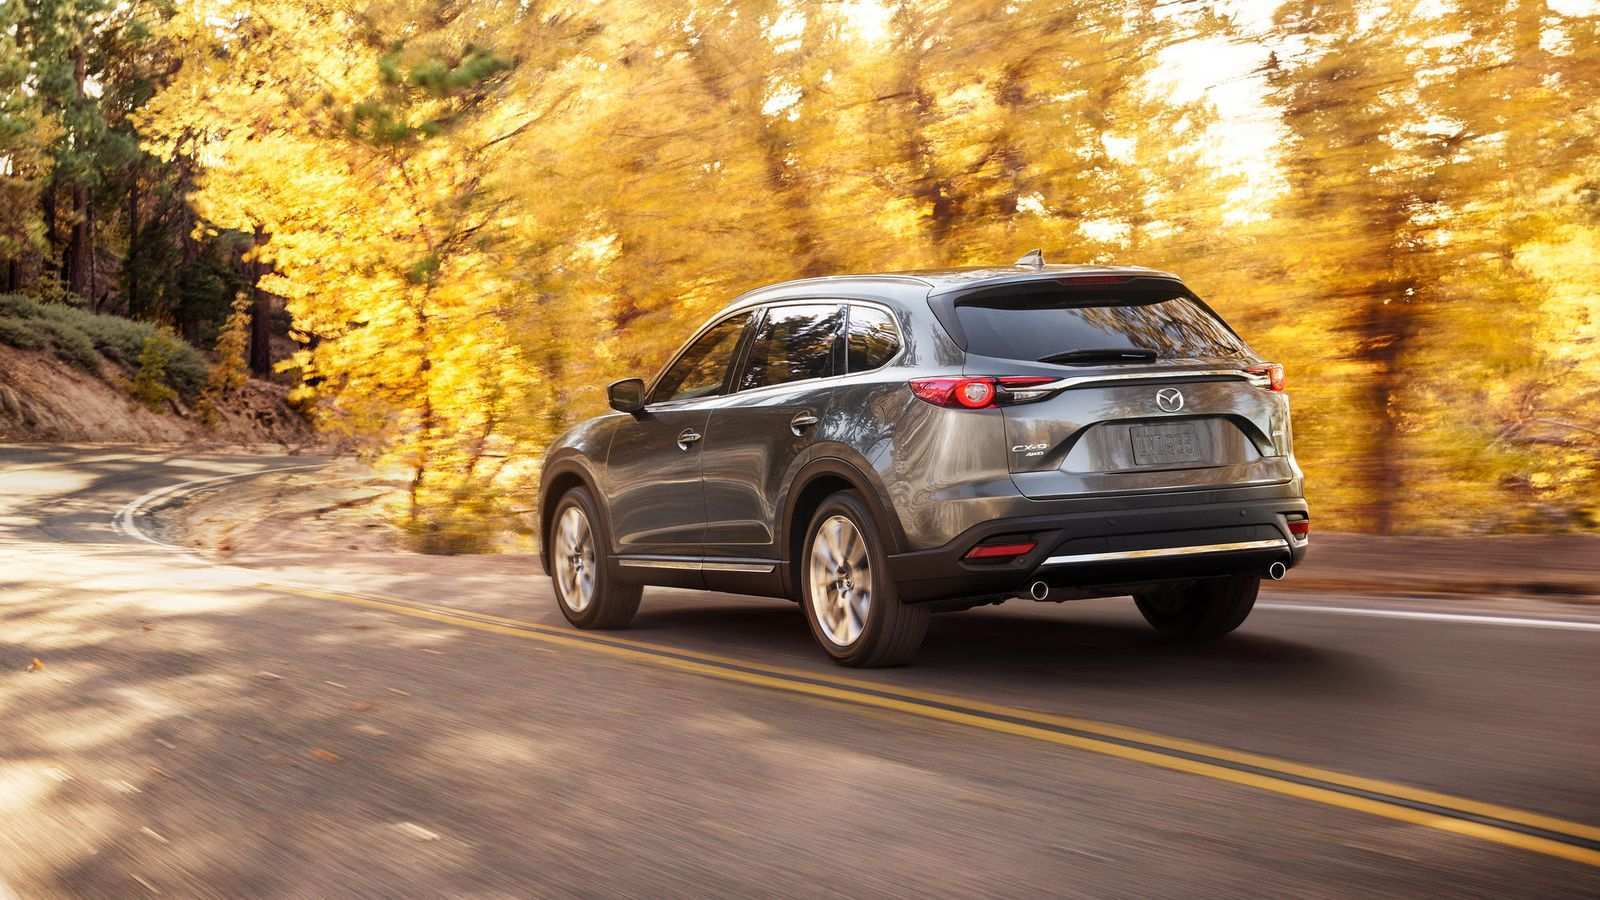 79 The Best 2019 Mazda CX 9 Price And Review